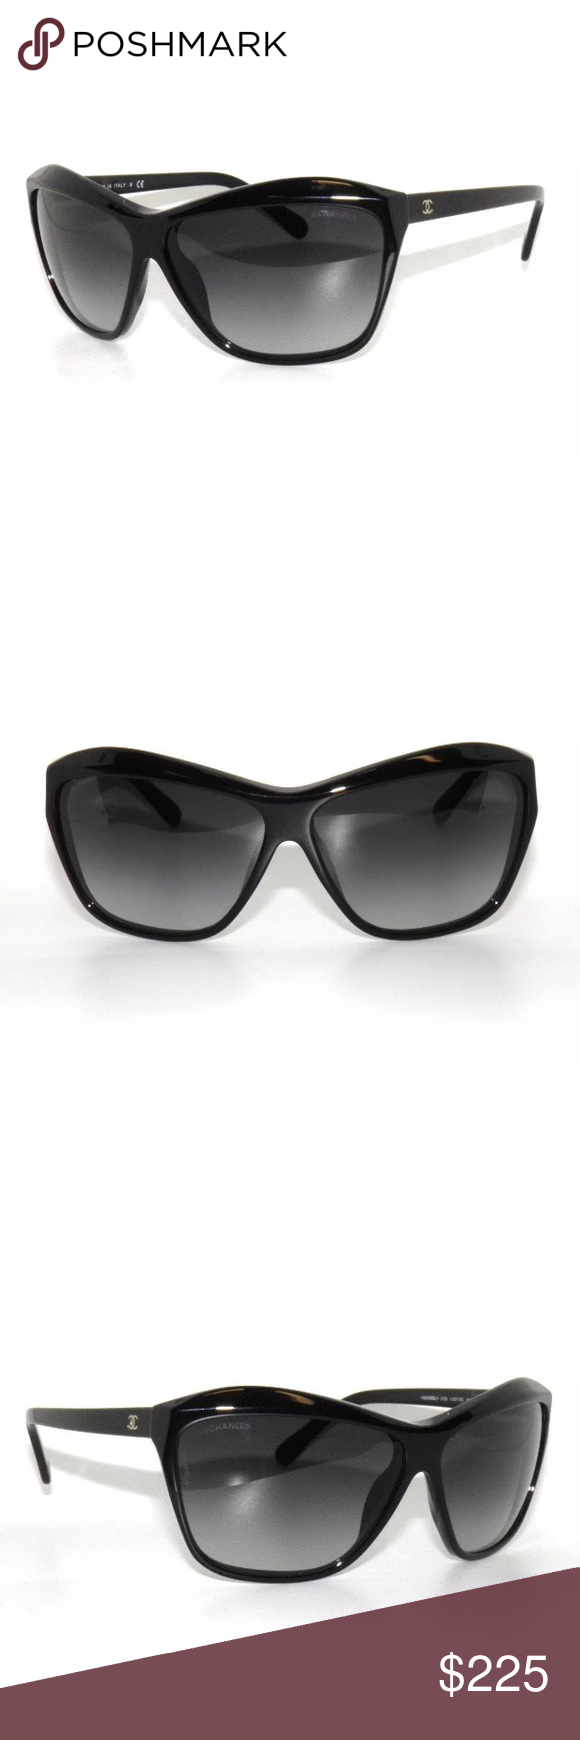 284437c119149 Chanel 5153 Black and Grey Gradient Sunglasses Excellent condition ...